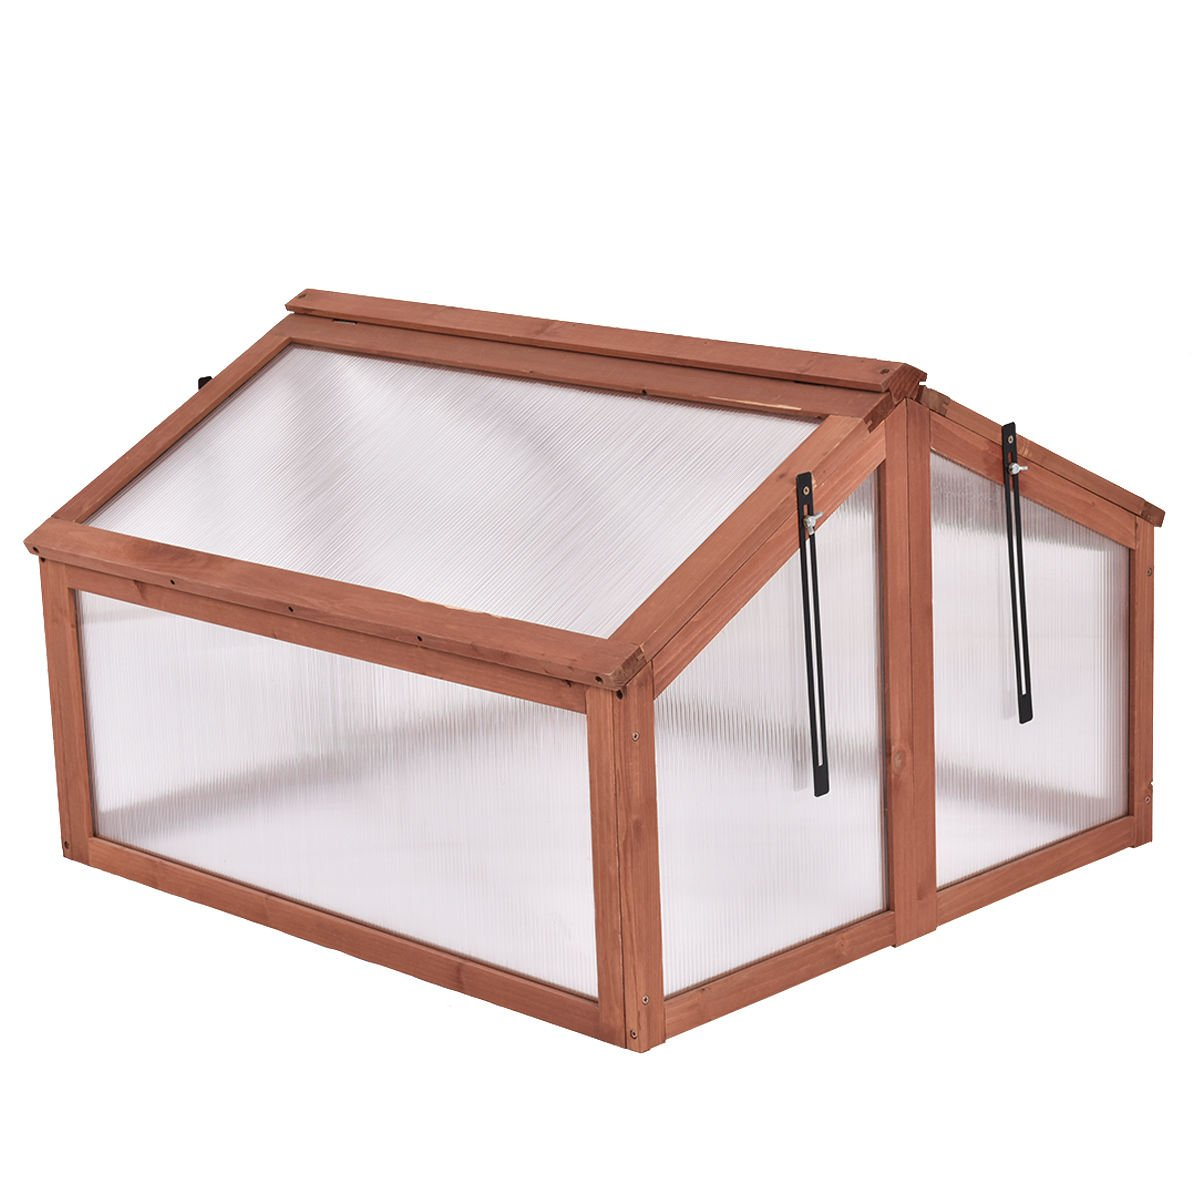 KCHEX>Double Box Garden Wooden Green House Cold Frame Raised Plants Bed Protection New>This Large, Solid Wooden Greenhouse is Perfect for Extending Your Growing Season and Protecting Your Plants.